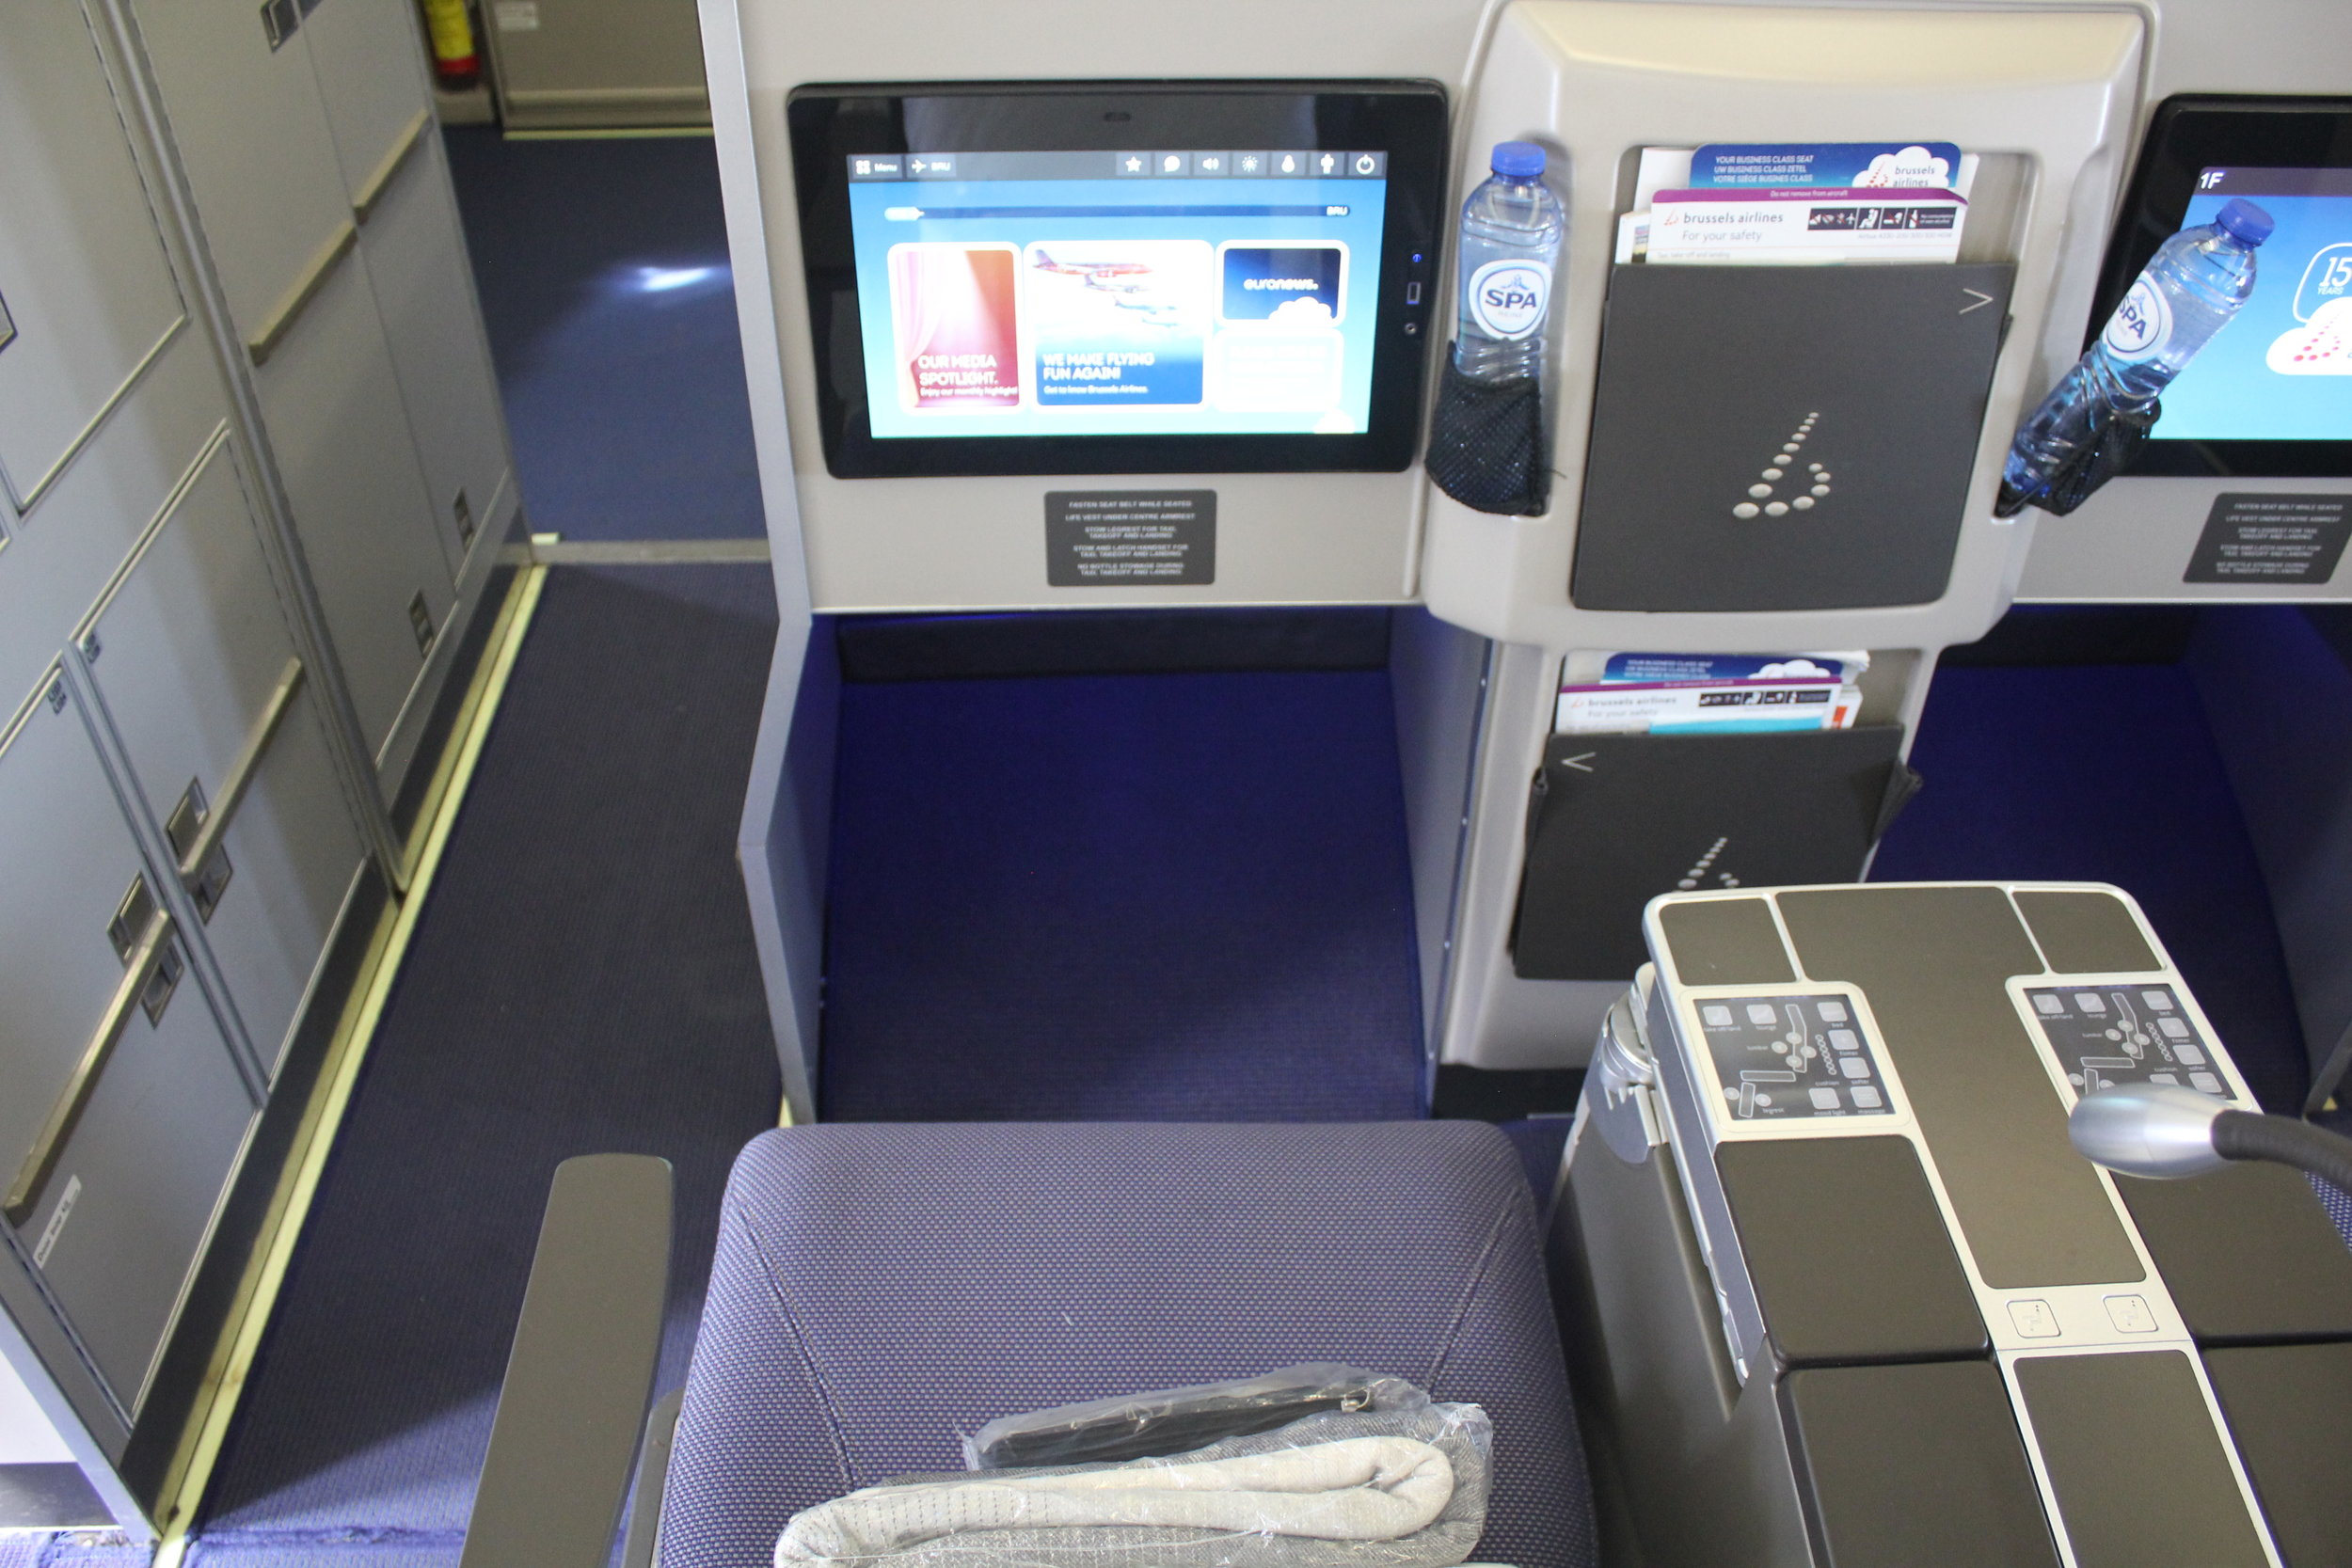 Brussels Airlines business class – Seat 1D